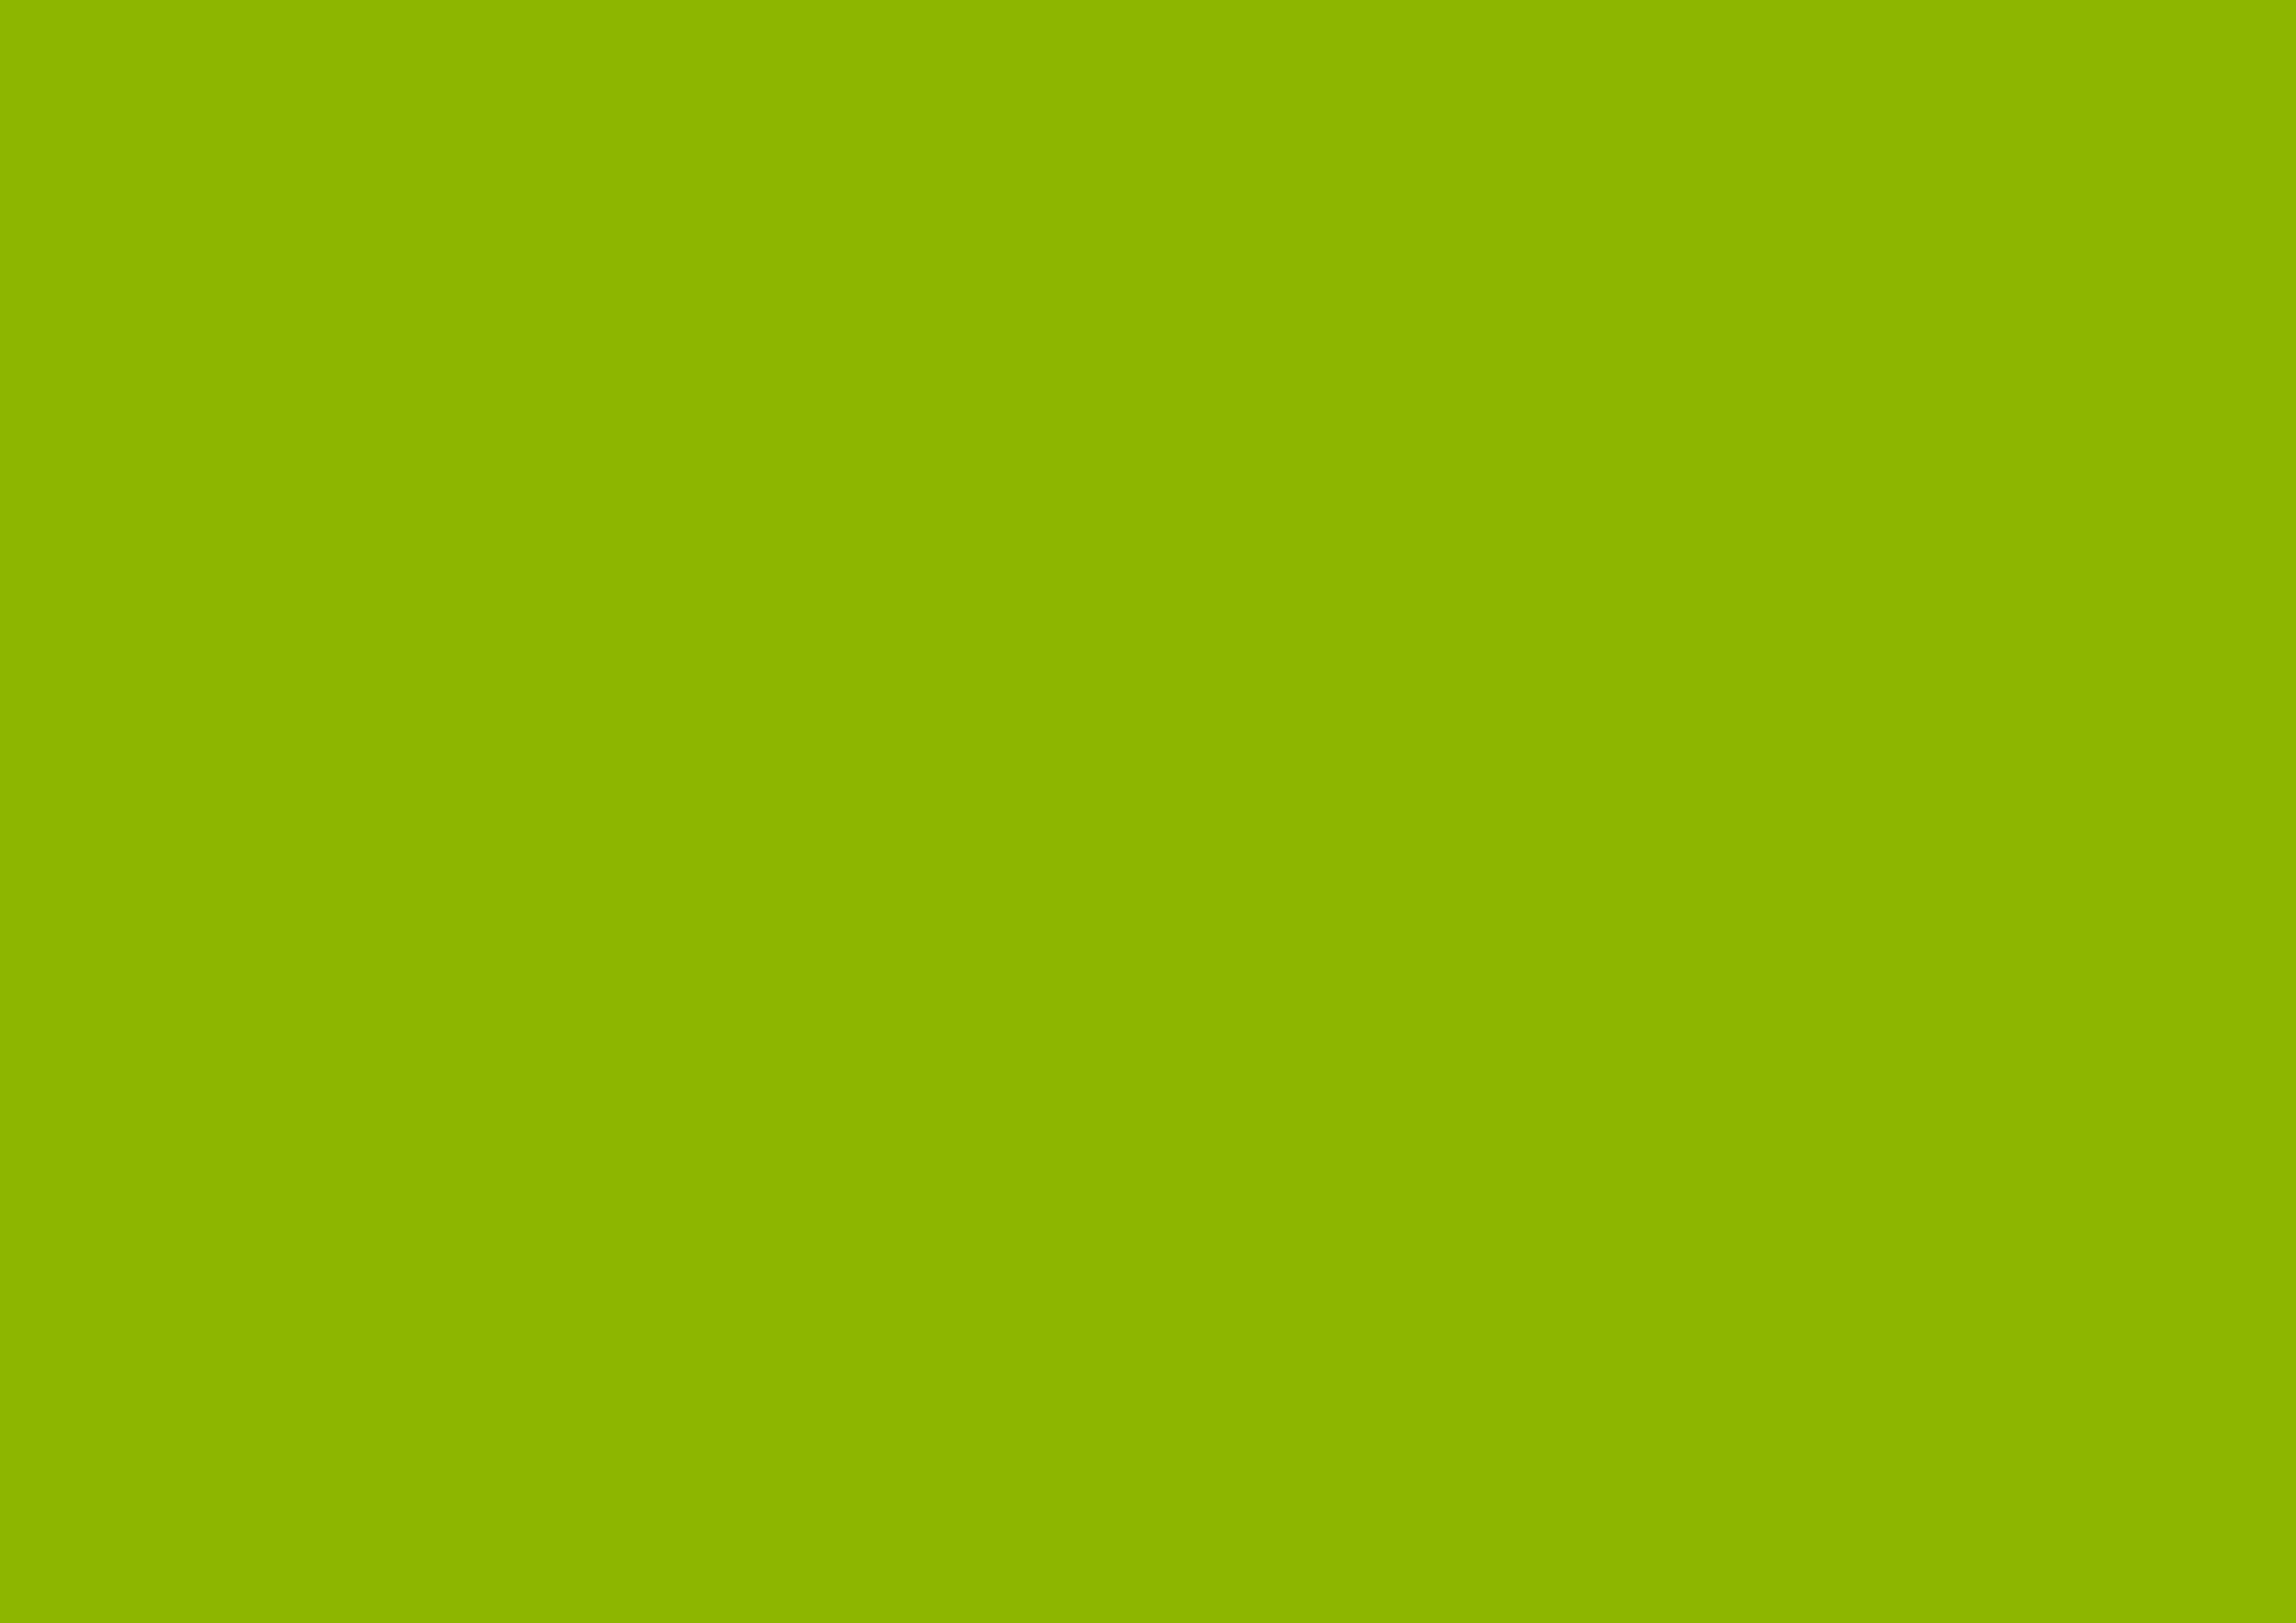 3508x2480 Apple Green Solid Color Background